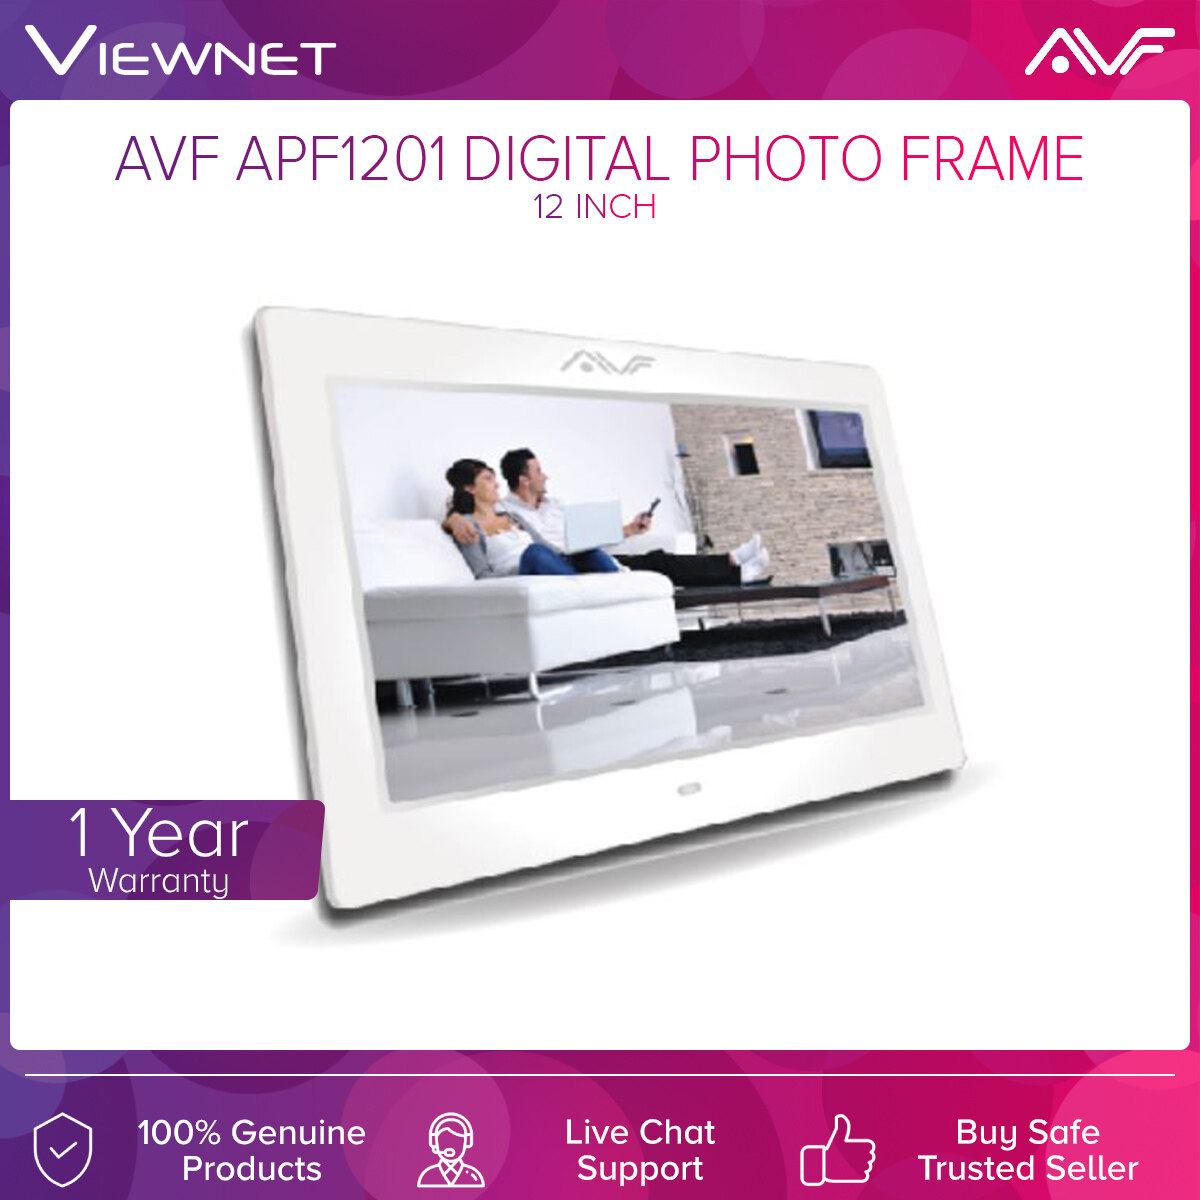 AVF APF1201 Digital Photo Frame with 12 Inch Screen, Built-In Speaker, 3.5mm Audio Output, USB Slot, Memory Card Slot